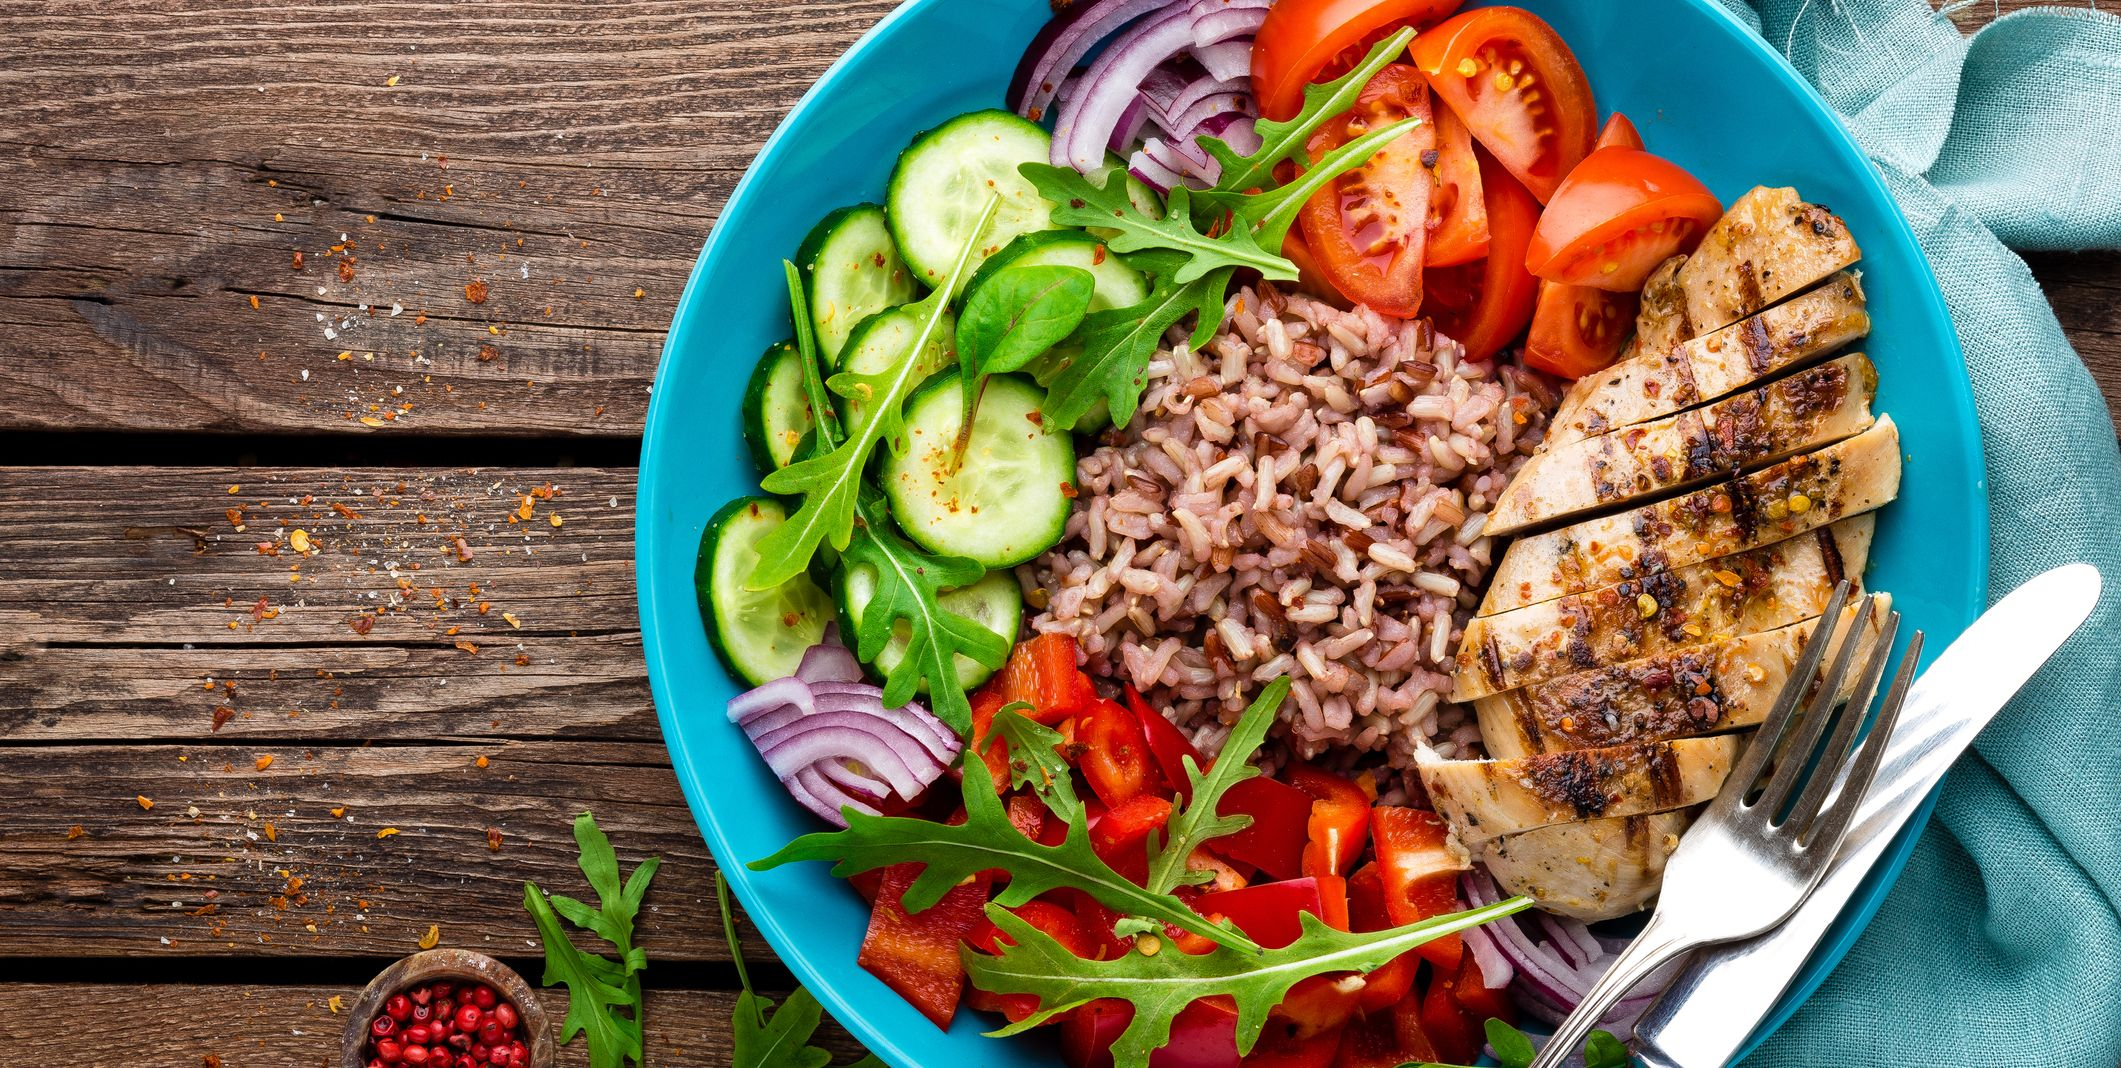 30 Best Low-Calorie Foods to Help You Lose Weight Fast, According to Dietitians